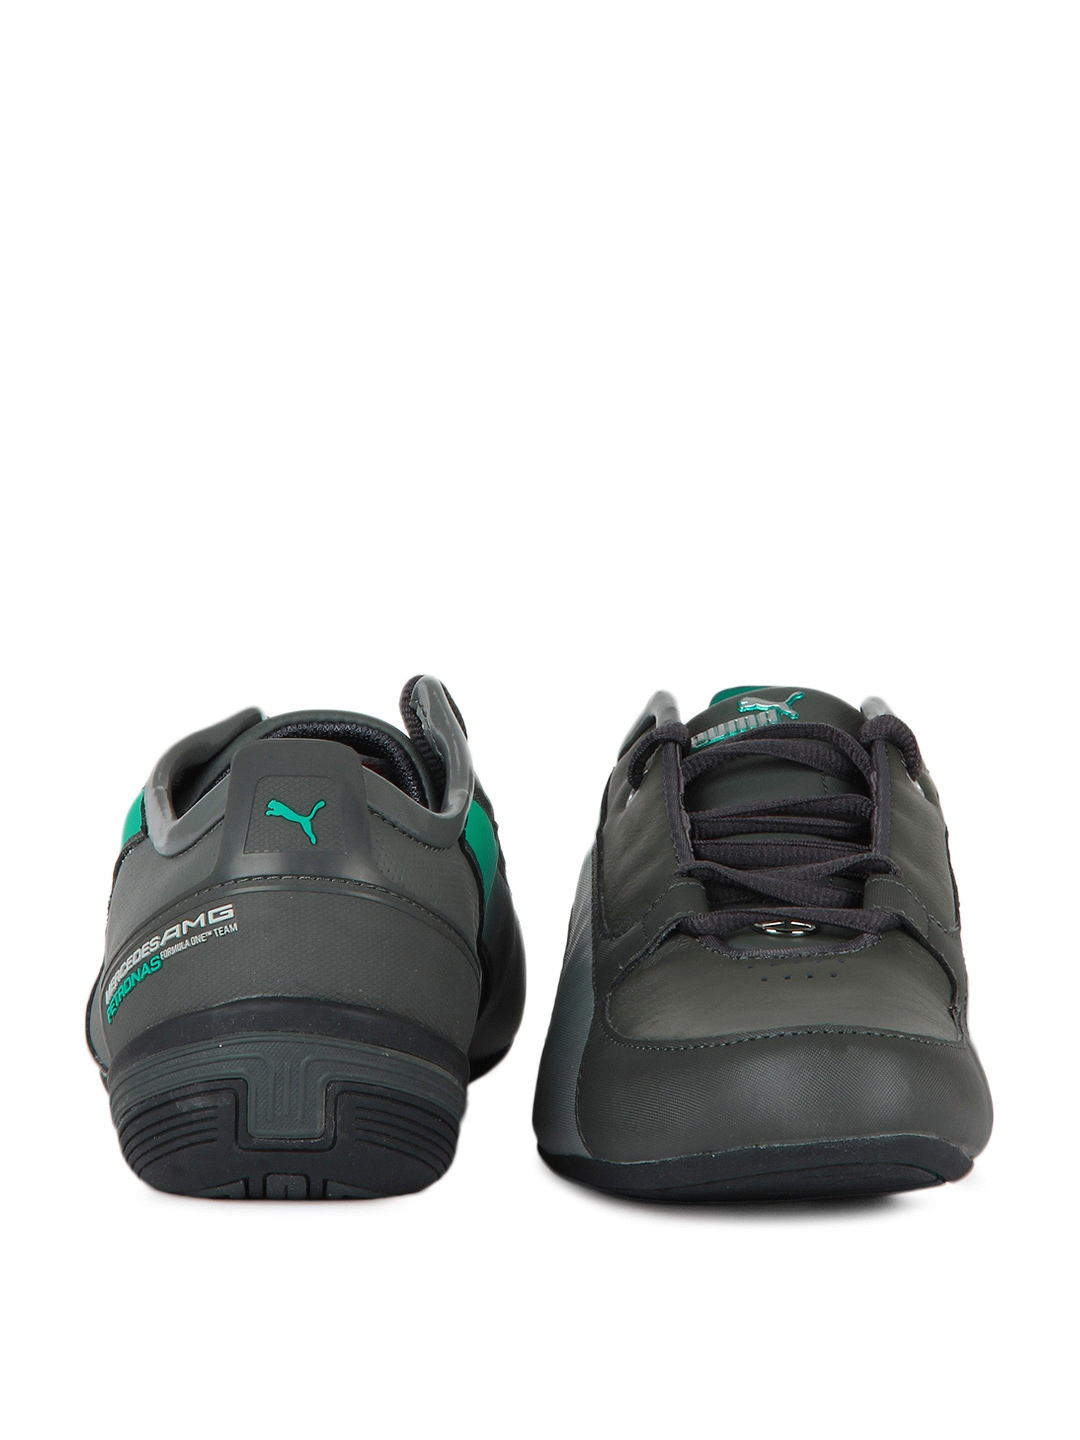 cee43b0e7cd puma mercedes shoes price cheap   OFF67% Discounted